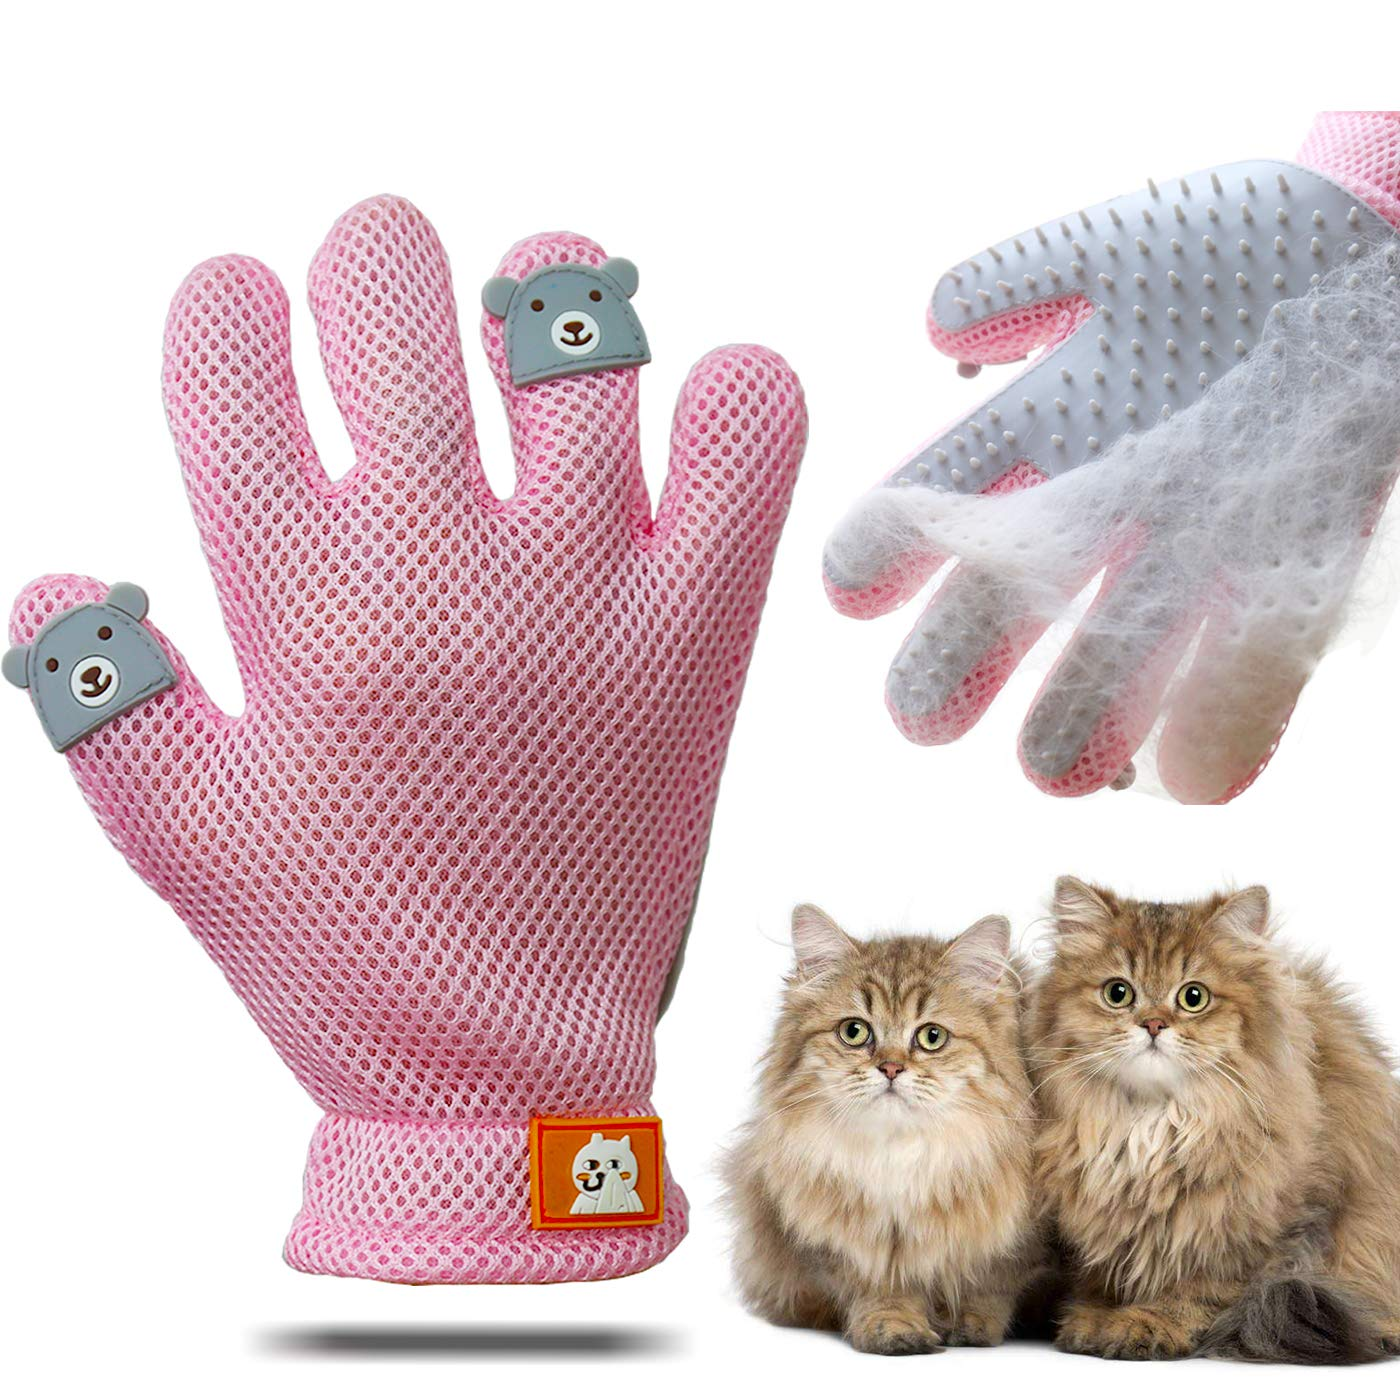 ENGERWALL 2019 New Upgraded Pet Grooming Glove - Gentle Pet Hair Remover Mitt & Dog Cat Deshedding Brush Glove, Perfect Pet Massage and Bathing Glove for Dog or Cat with Long & Short Fur (Right Hand)